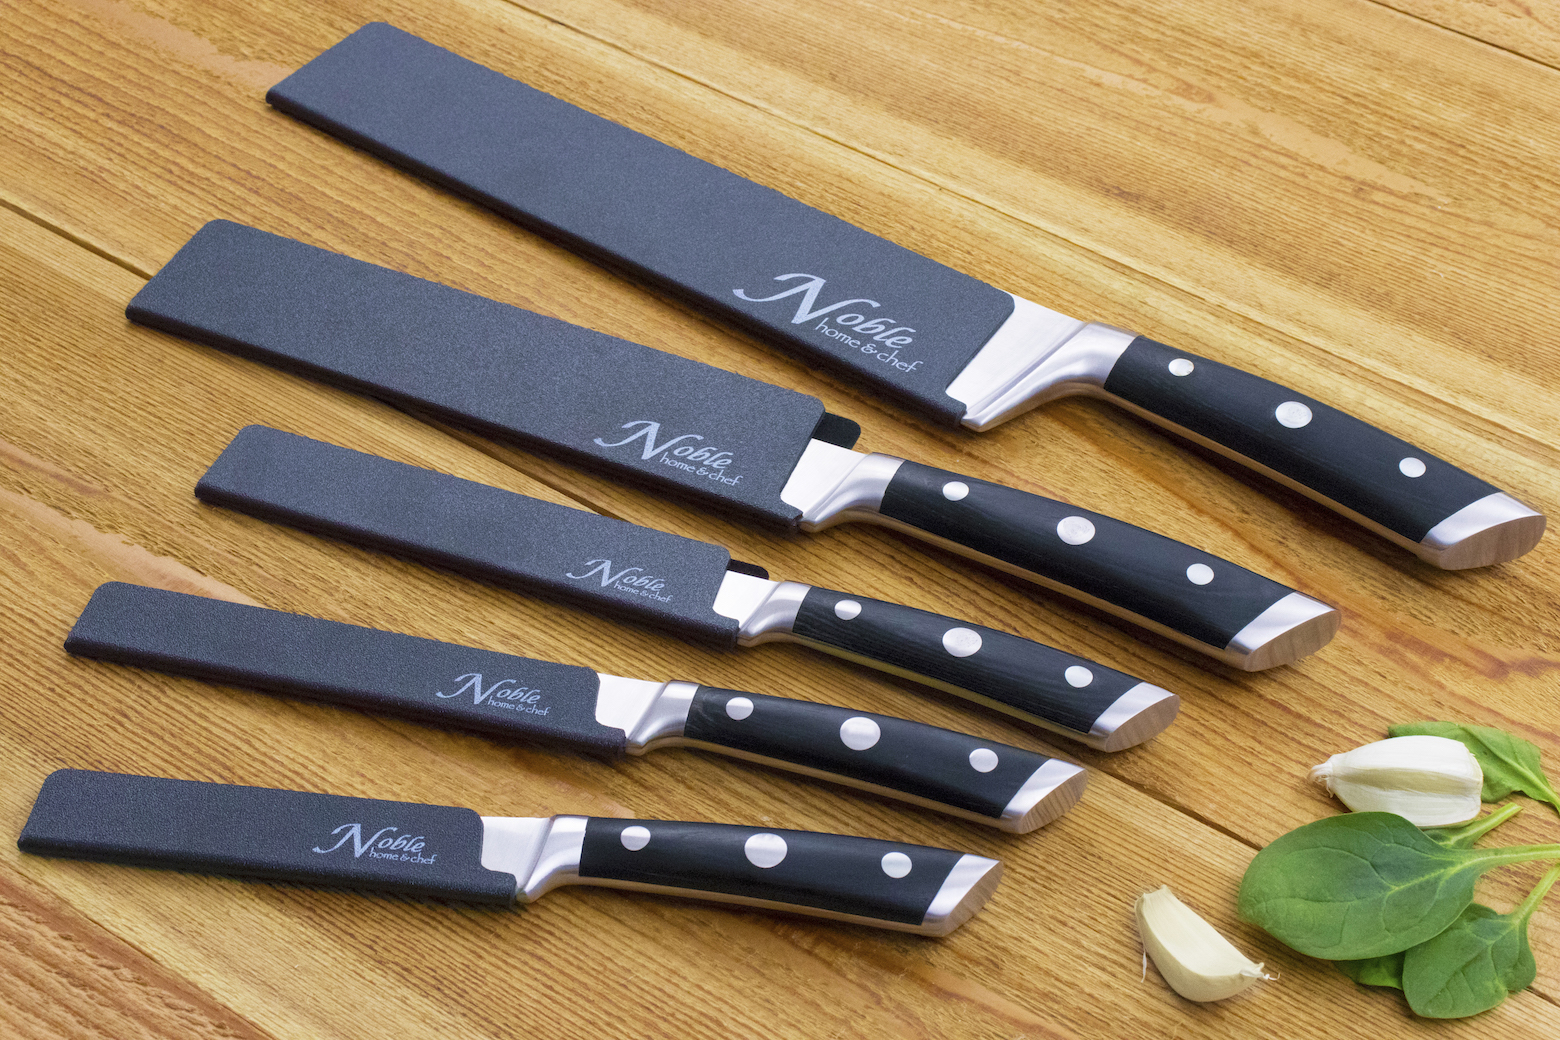 b077dxhwys 5 knife edge guards img 2760 noble home chef. Black Bedroom Furniture Sets. Home Design Ideas